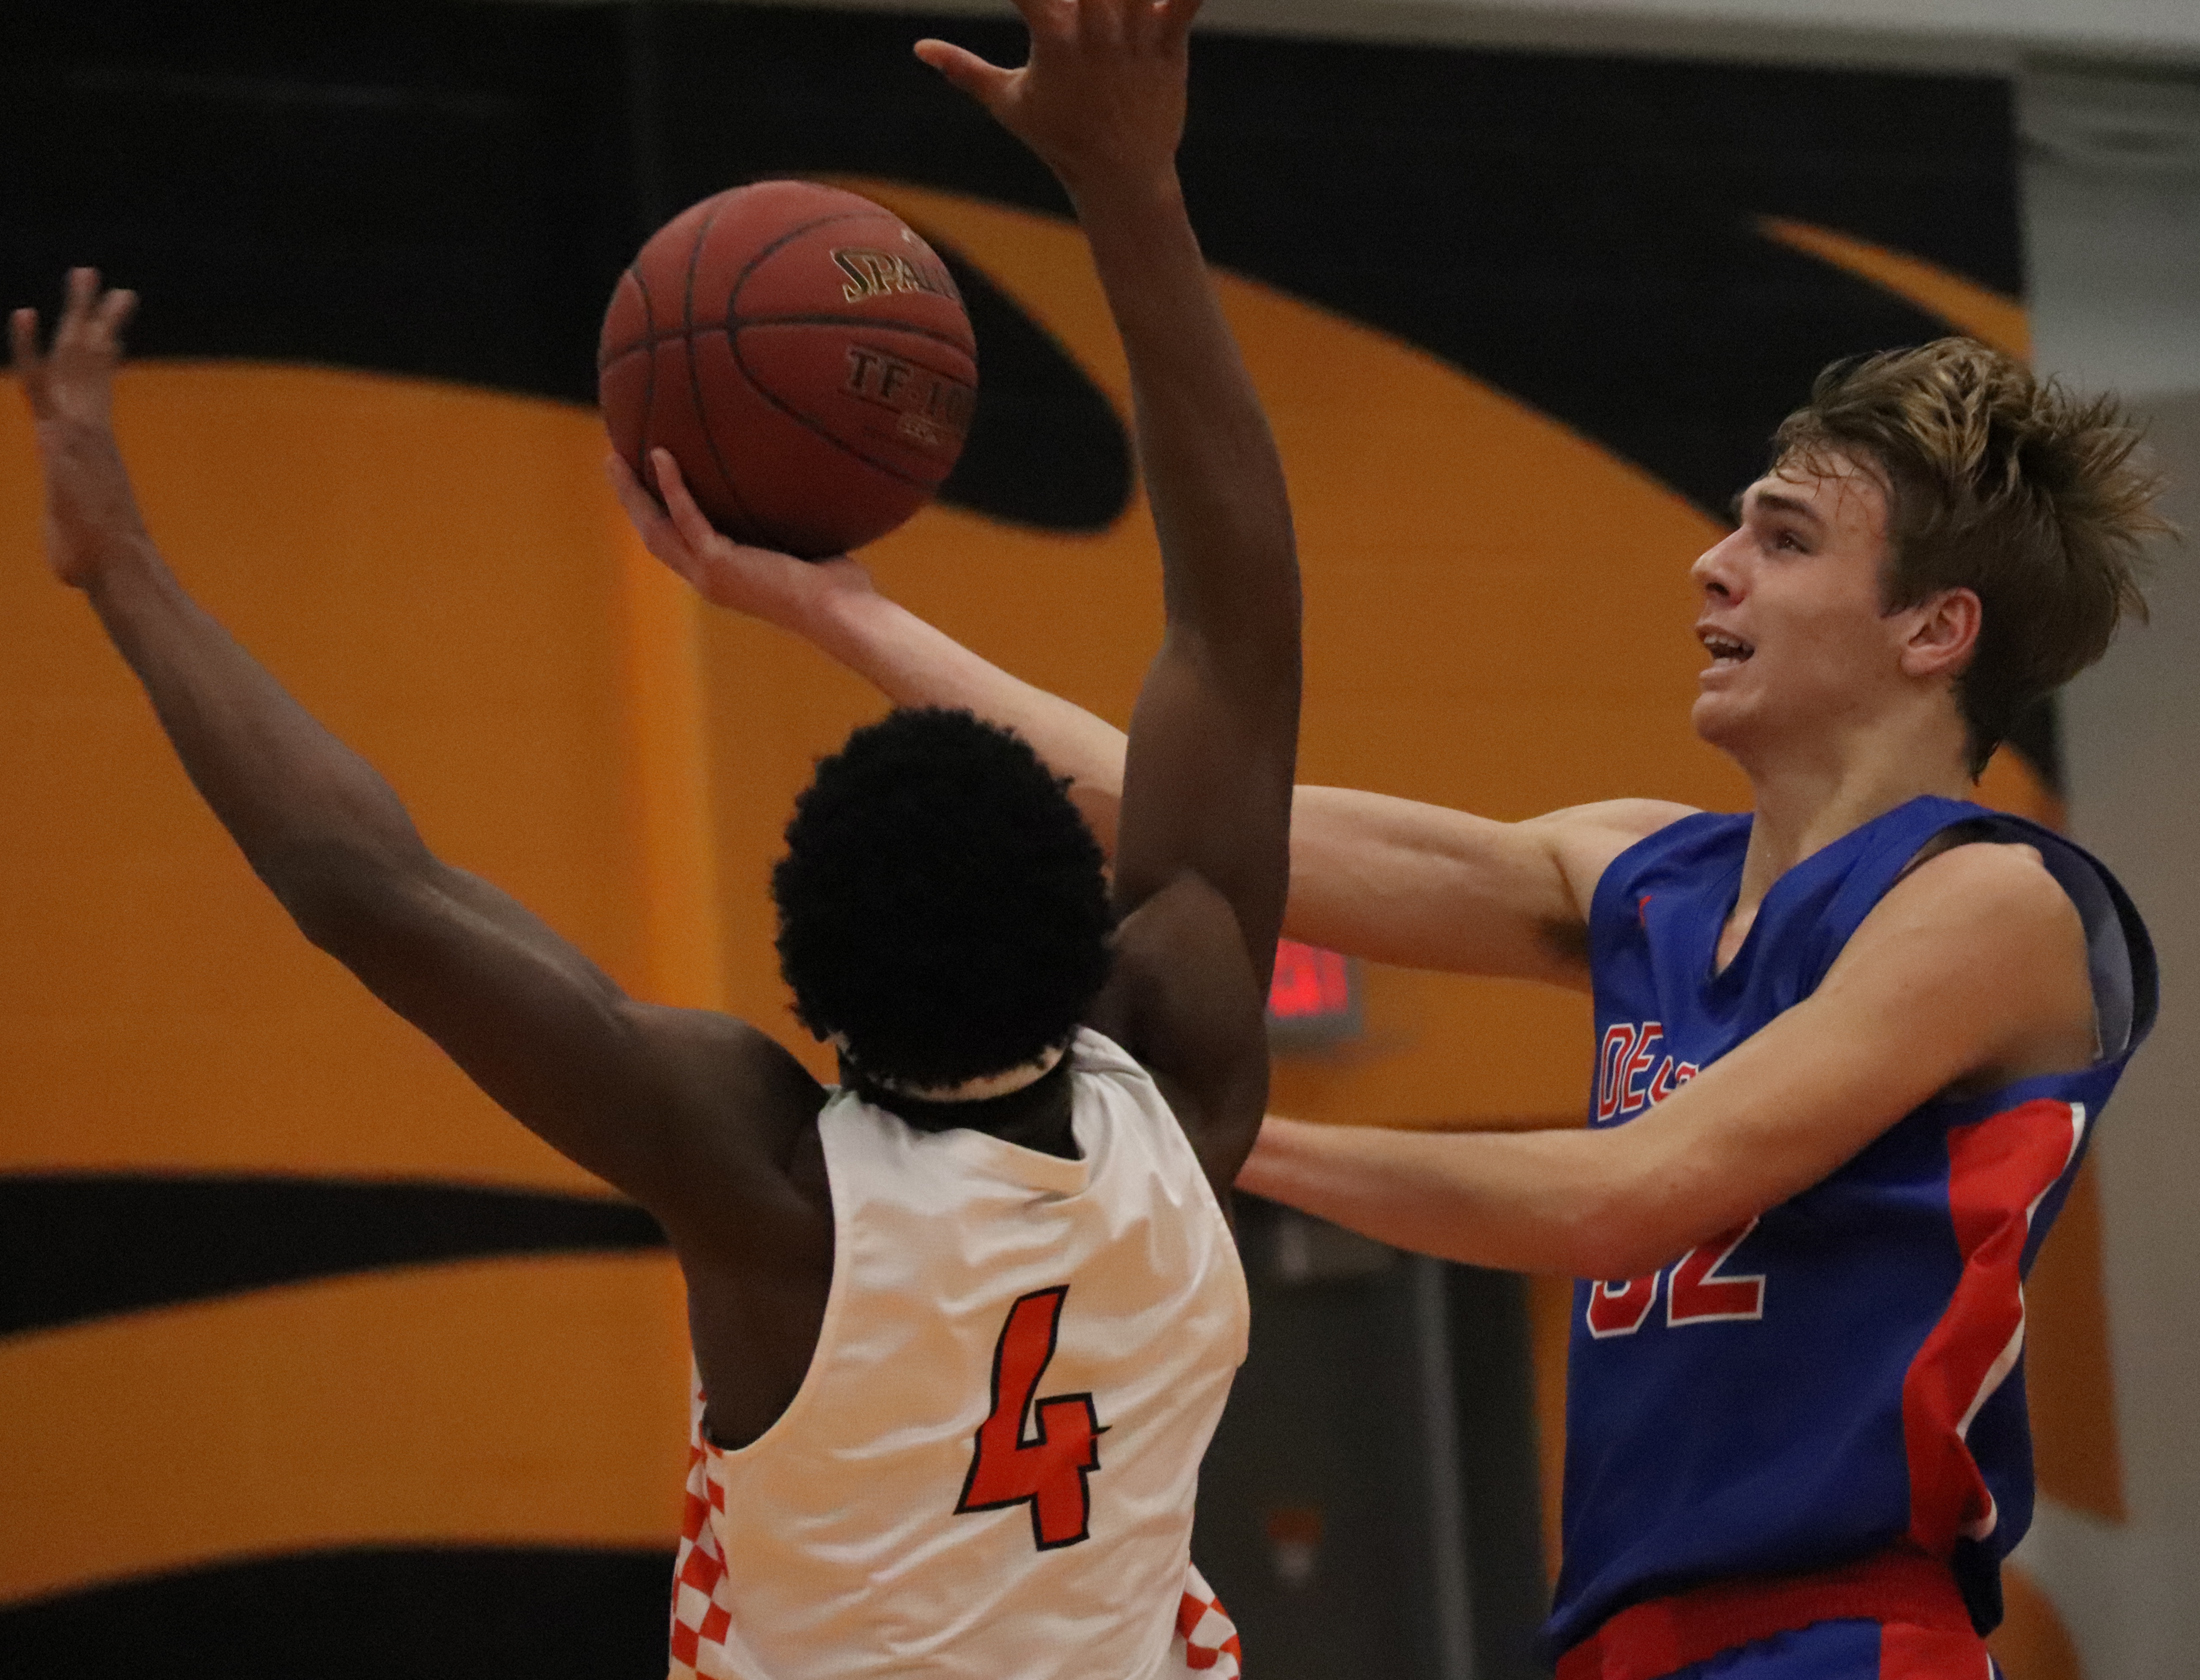 Vikings take 2 from Comets